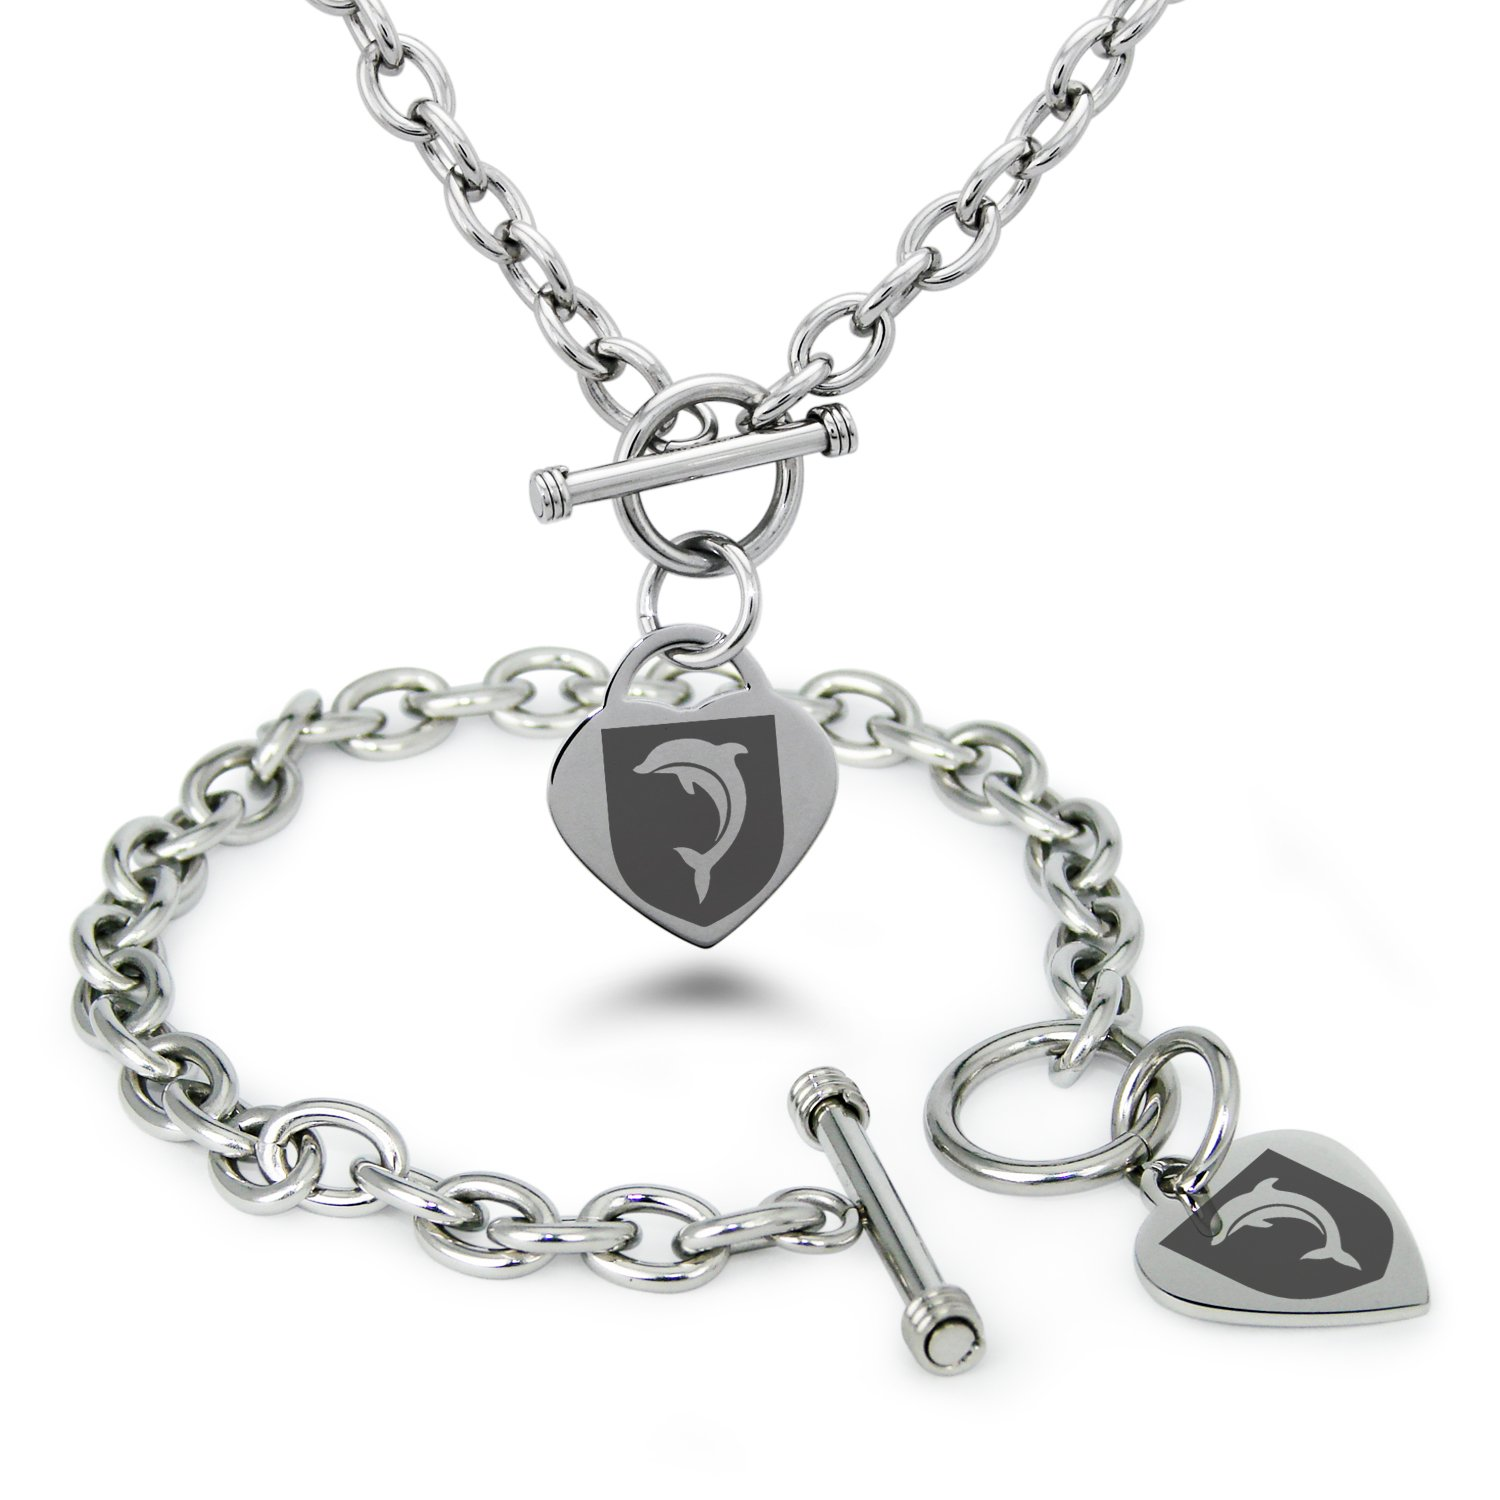 Tioneer Stainless Steel Dolphin Diligence Coat of Arms Shield Symbols Heart Charm, Bracelet & Necklace Set